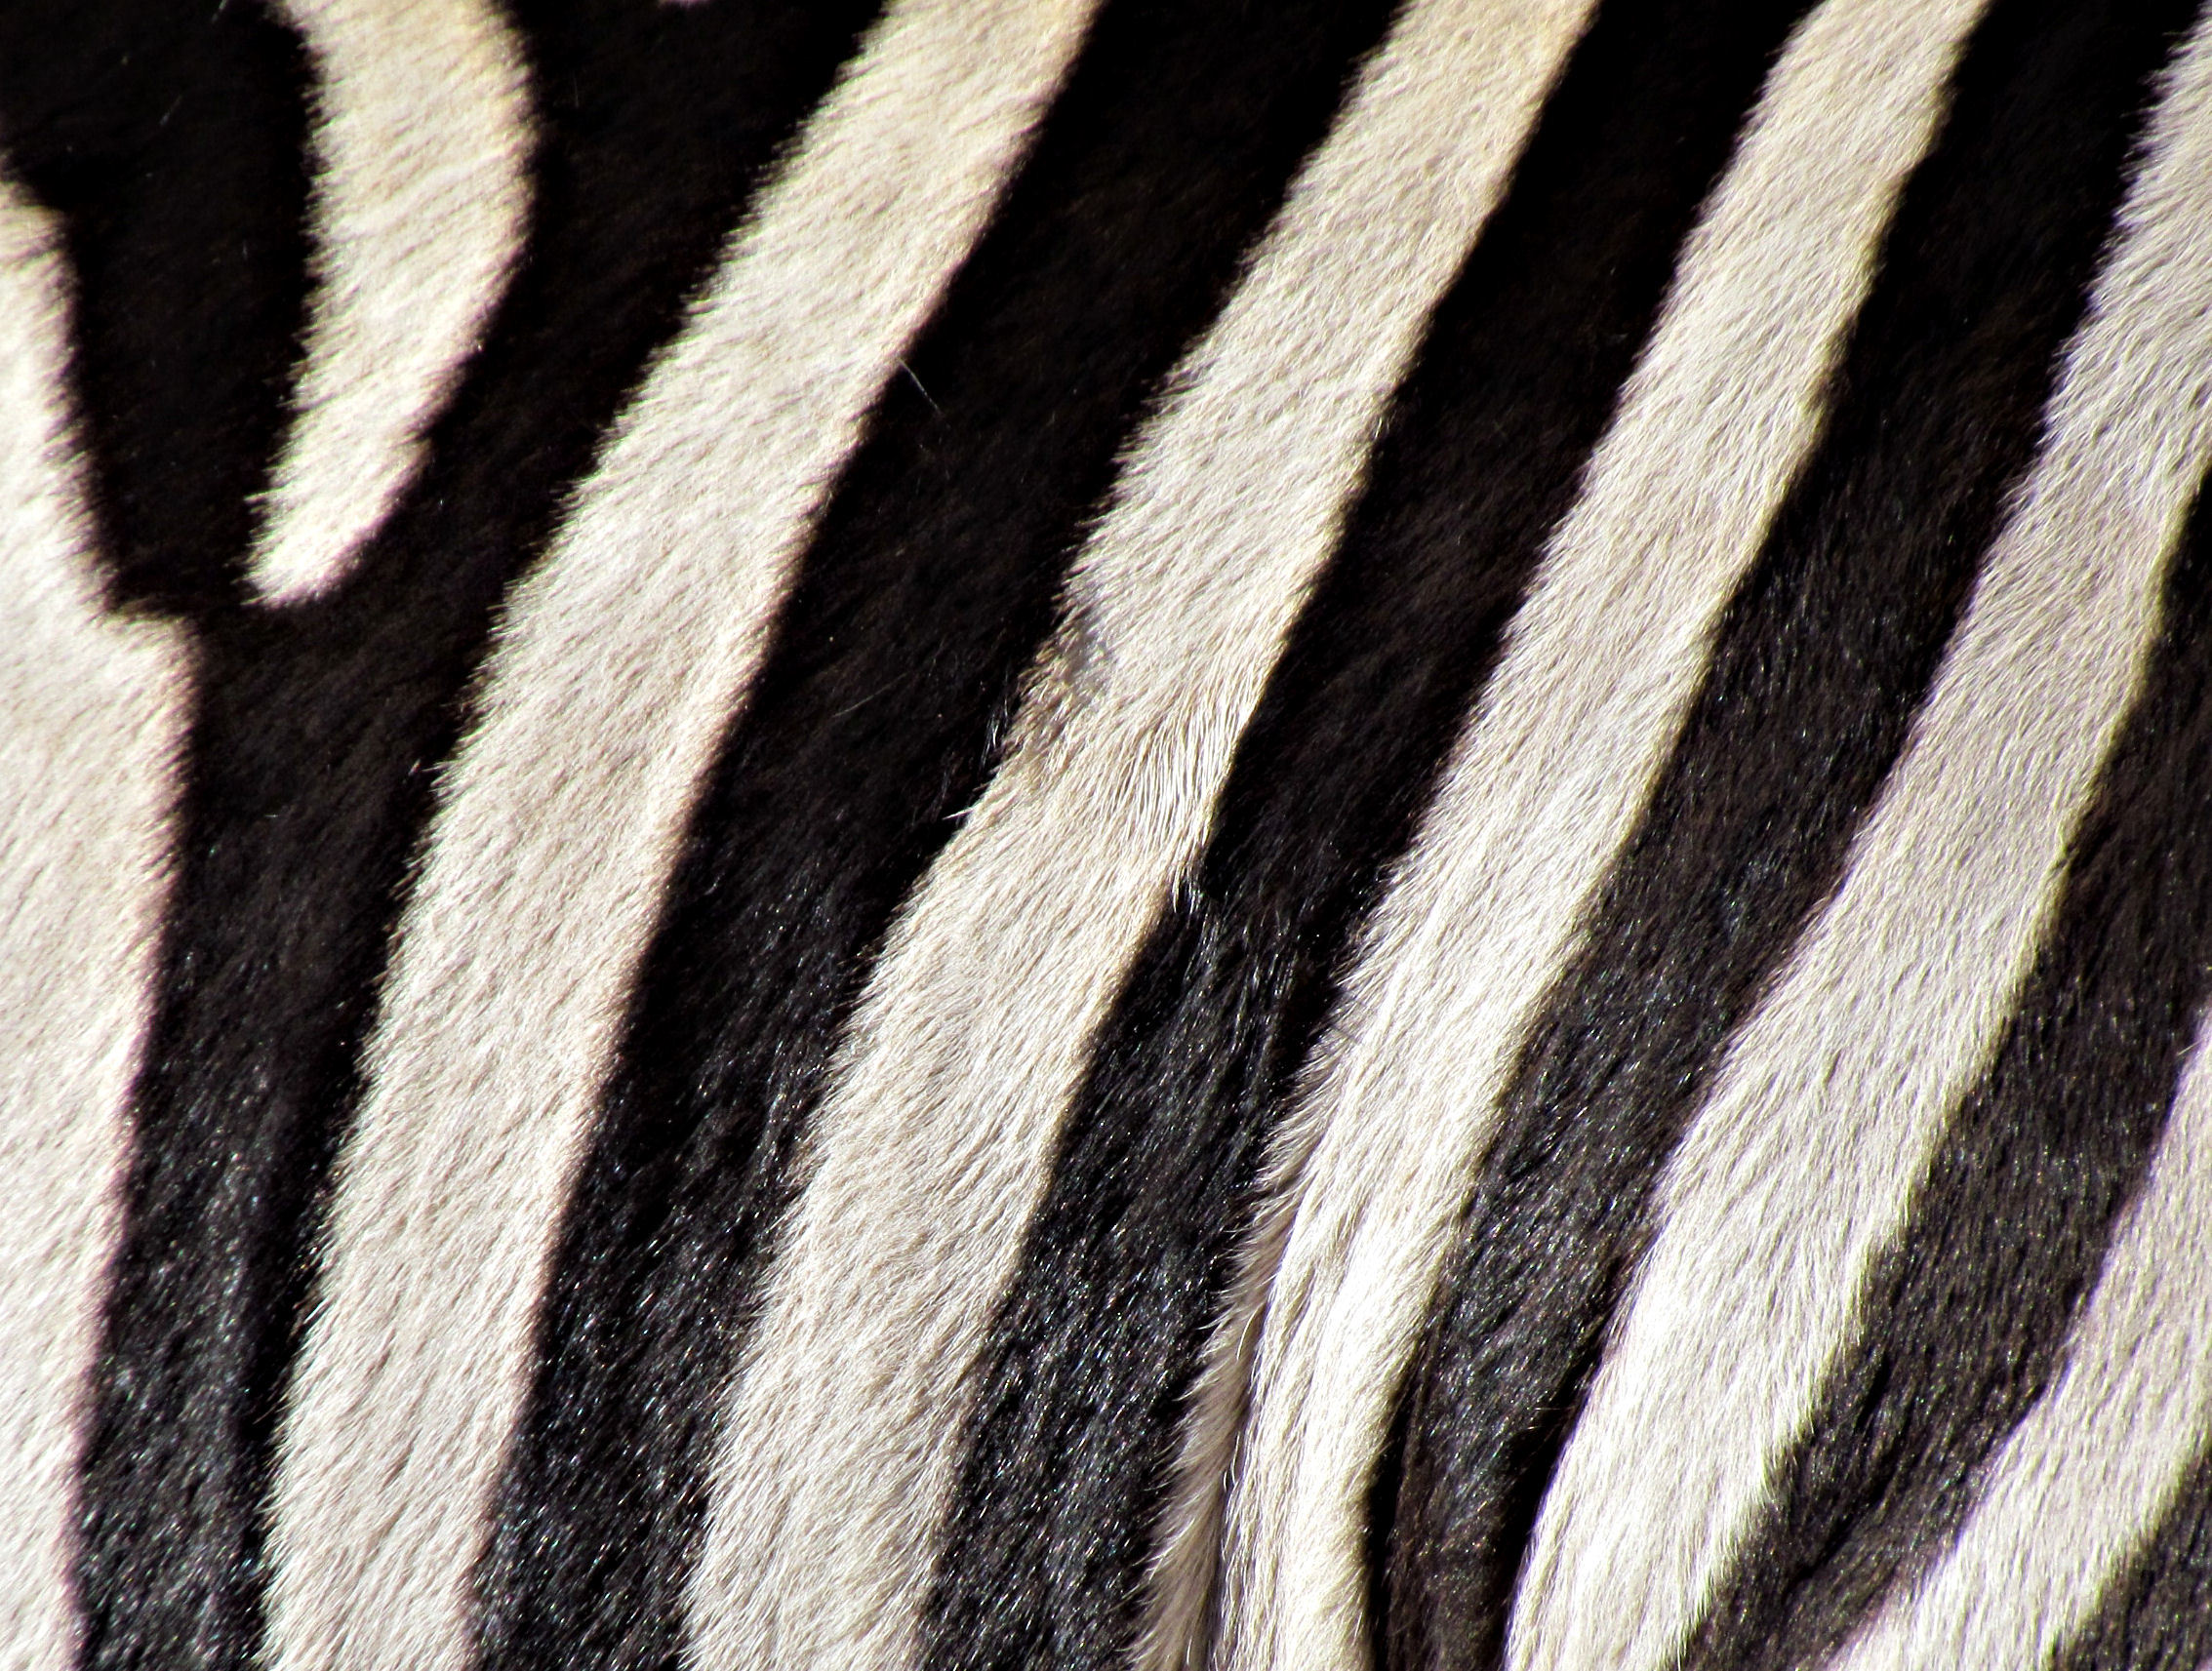 Textures zebras skin stripes HD Wallpaper